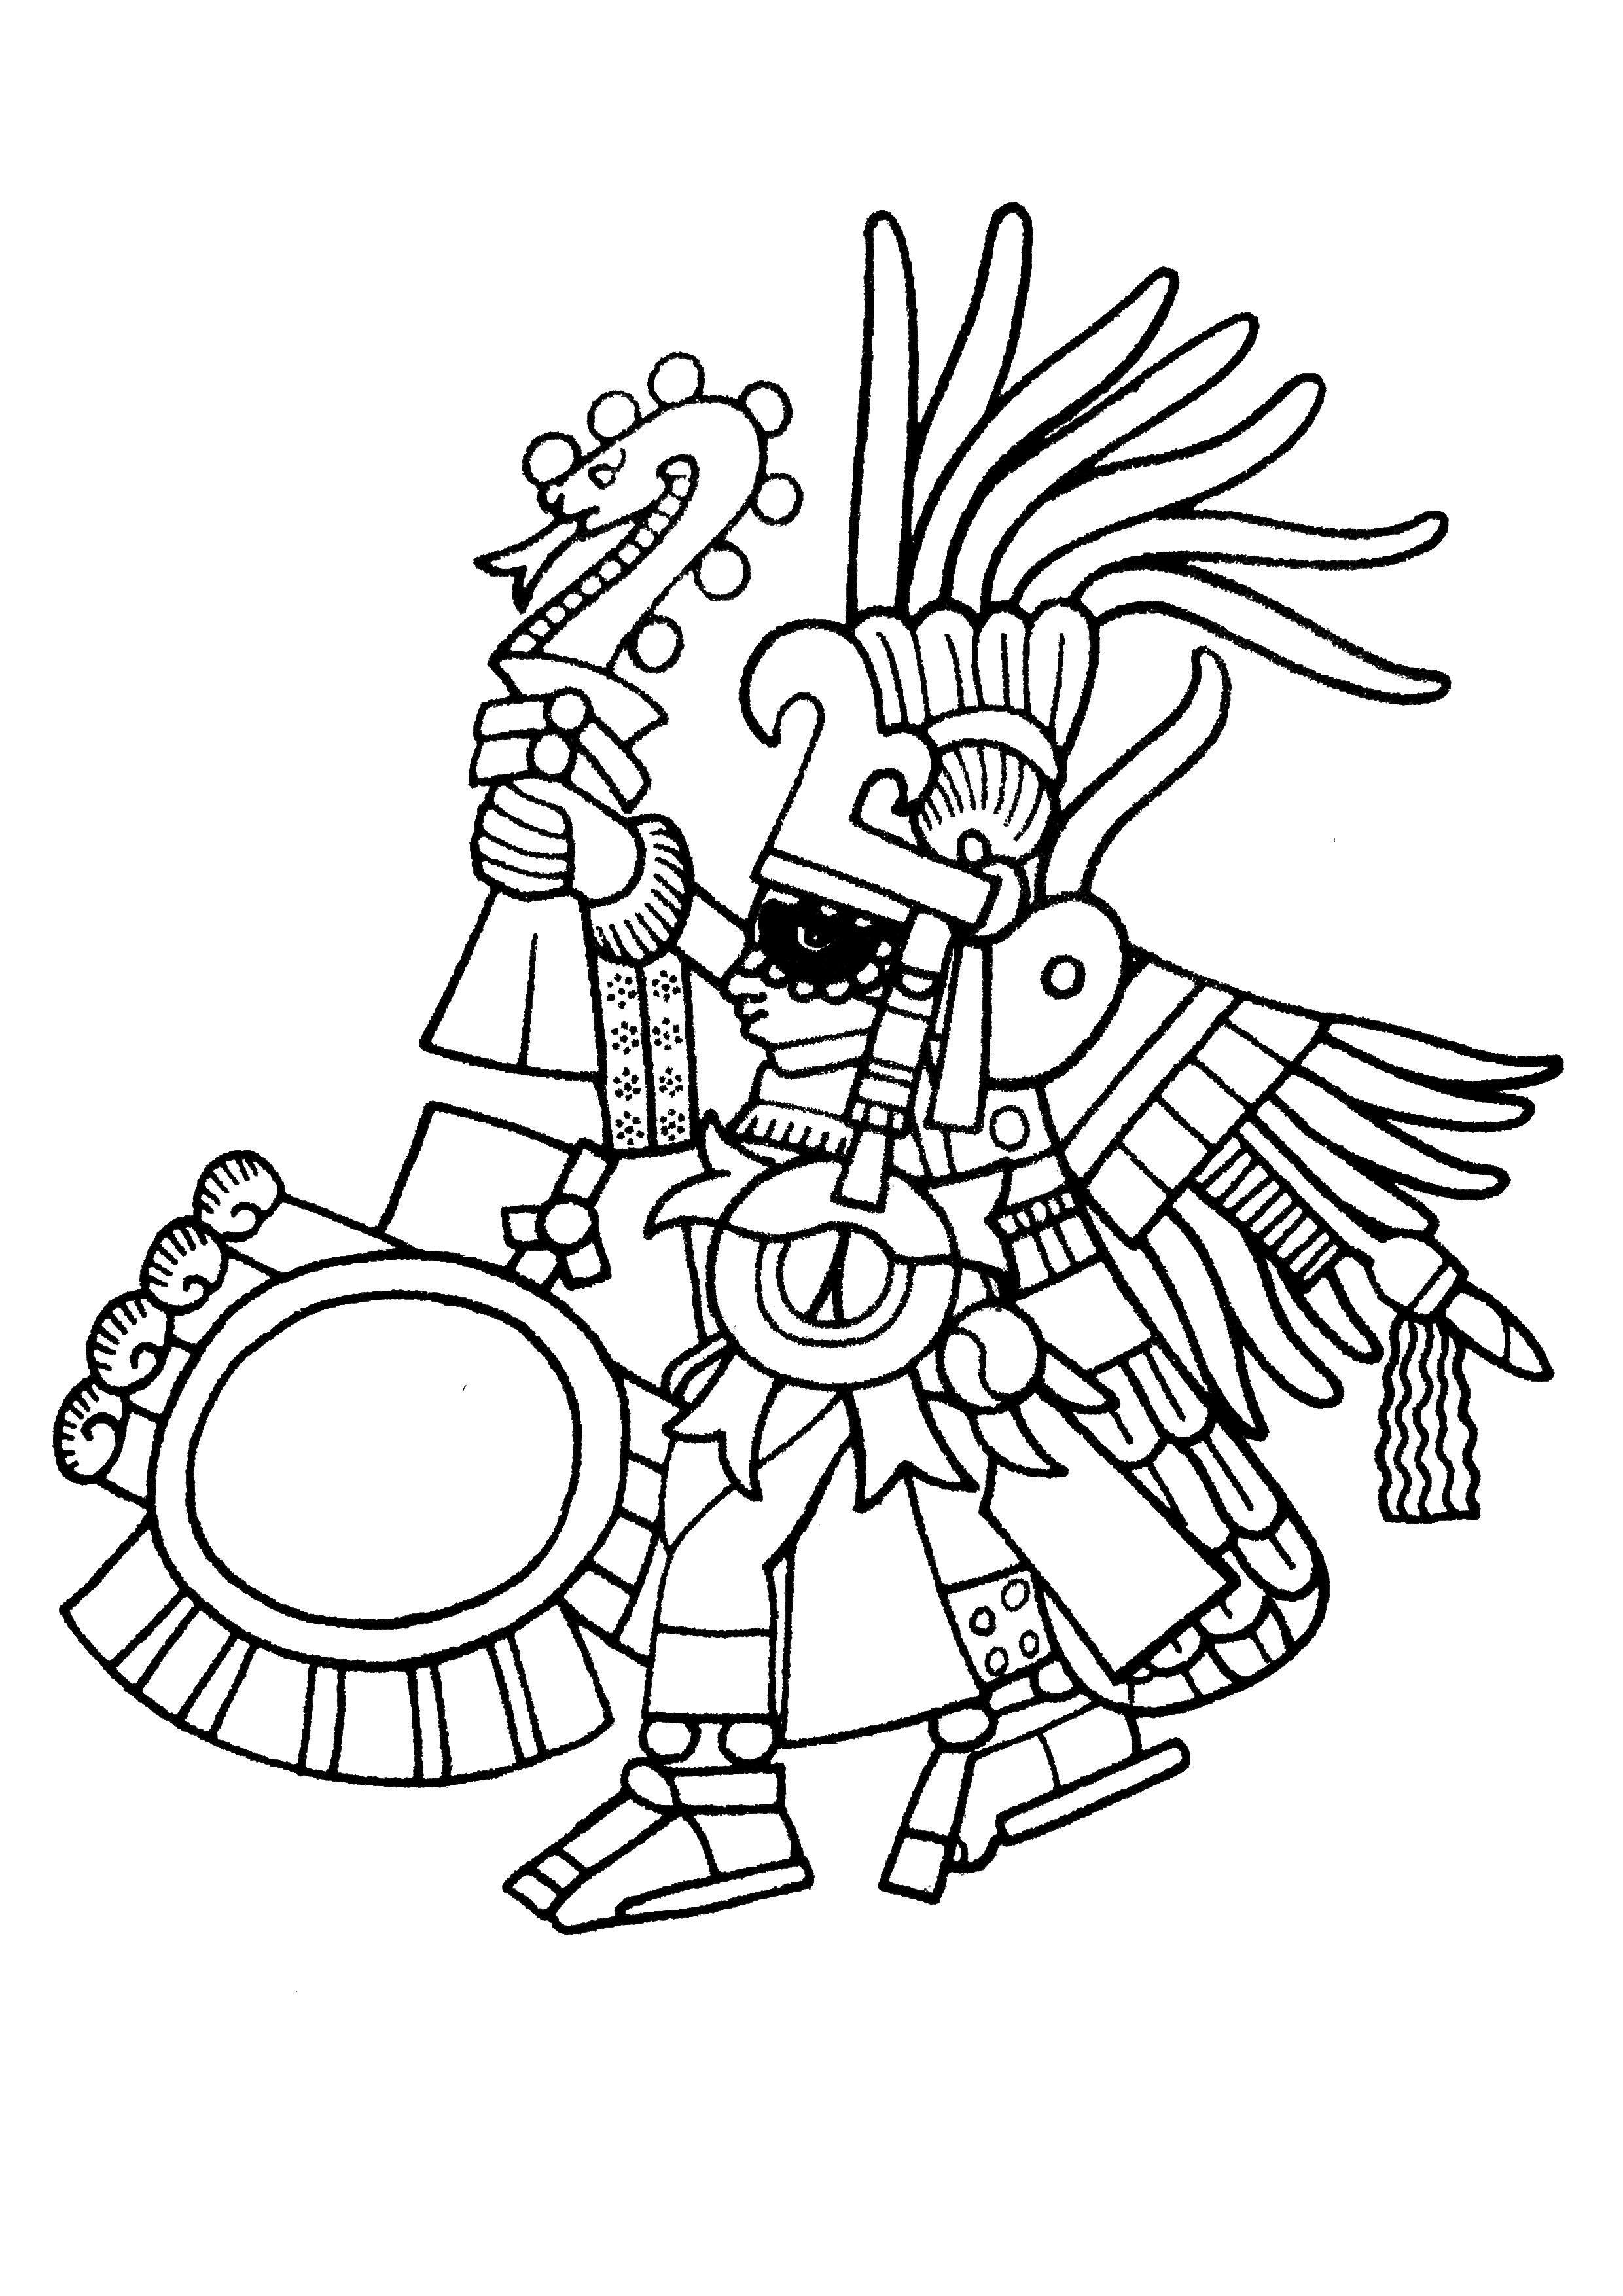 Huitzilopochtli, the Aztec supreme deity and God of War, brandishes aloft a Xiuhcoatl fire serpent staff